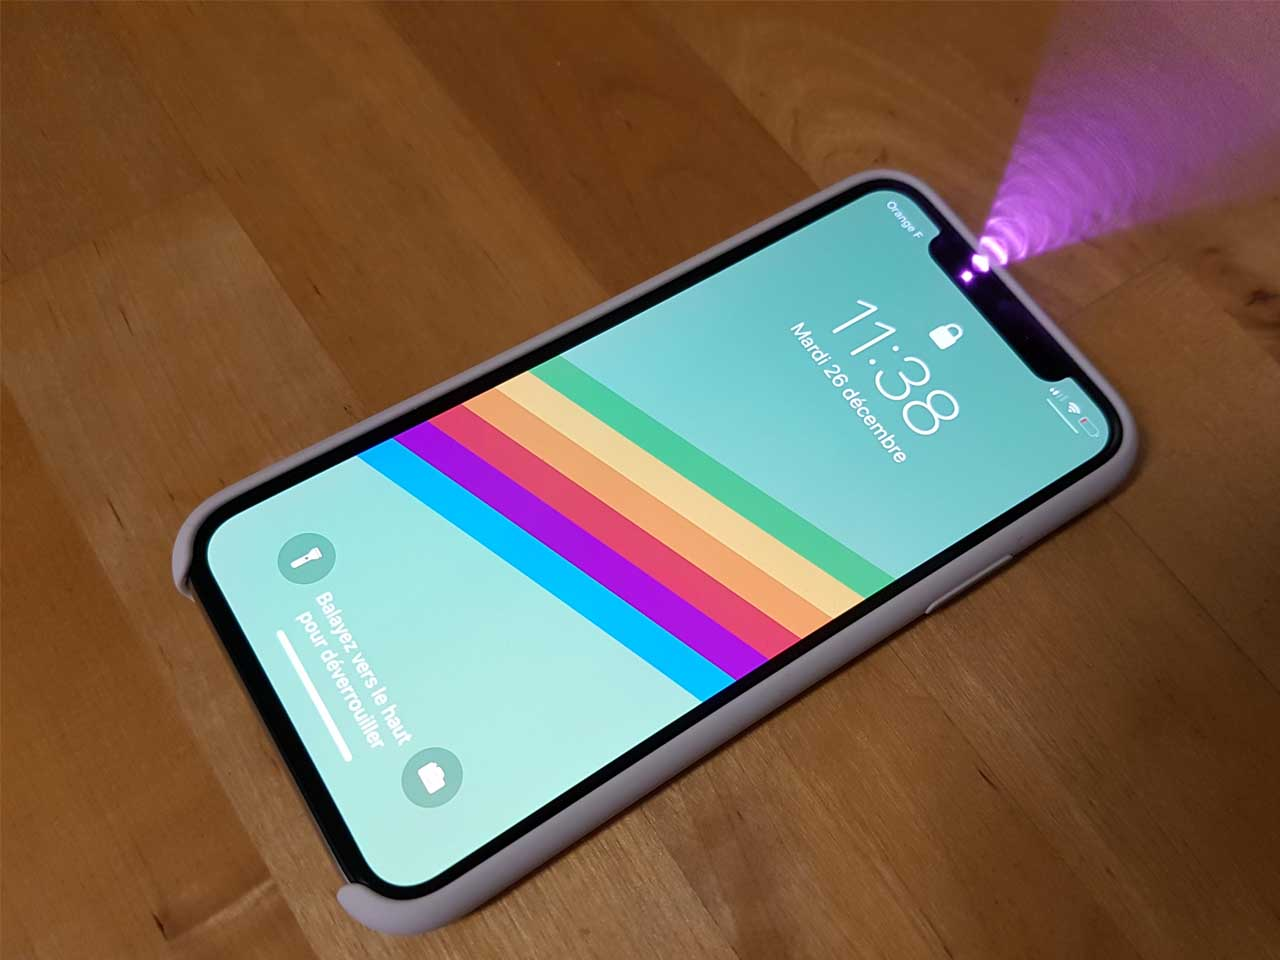 Face ID is visible when you take a picture of the iPhone X